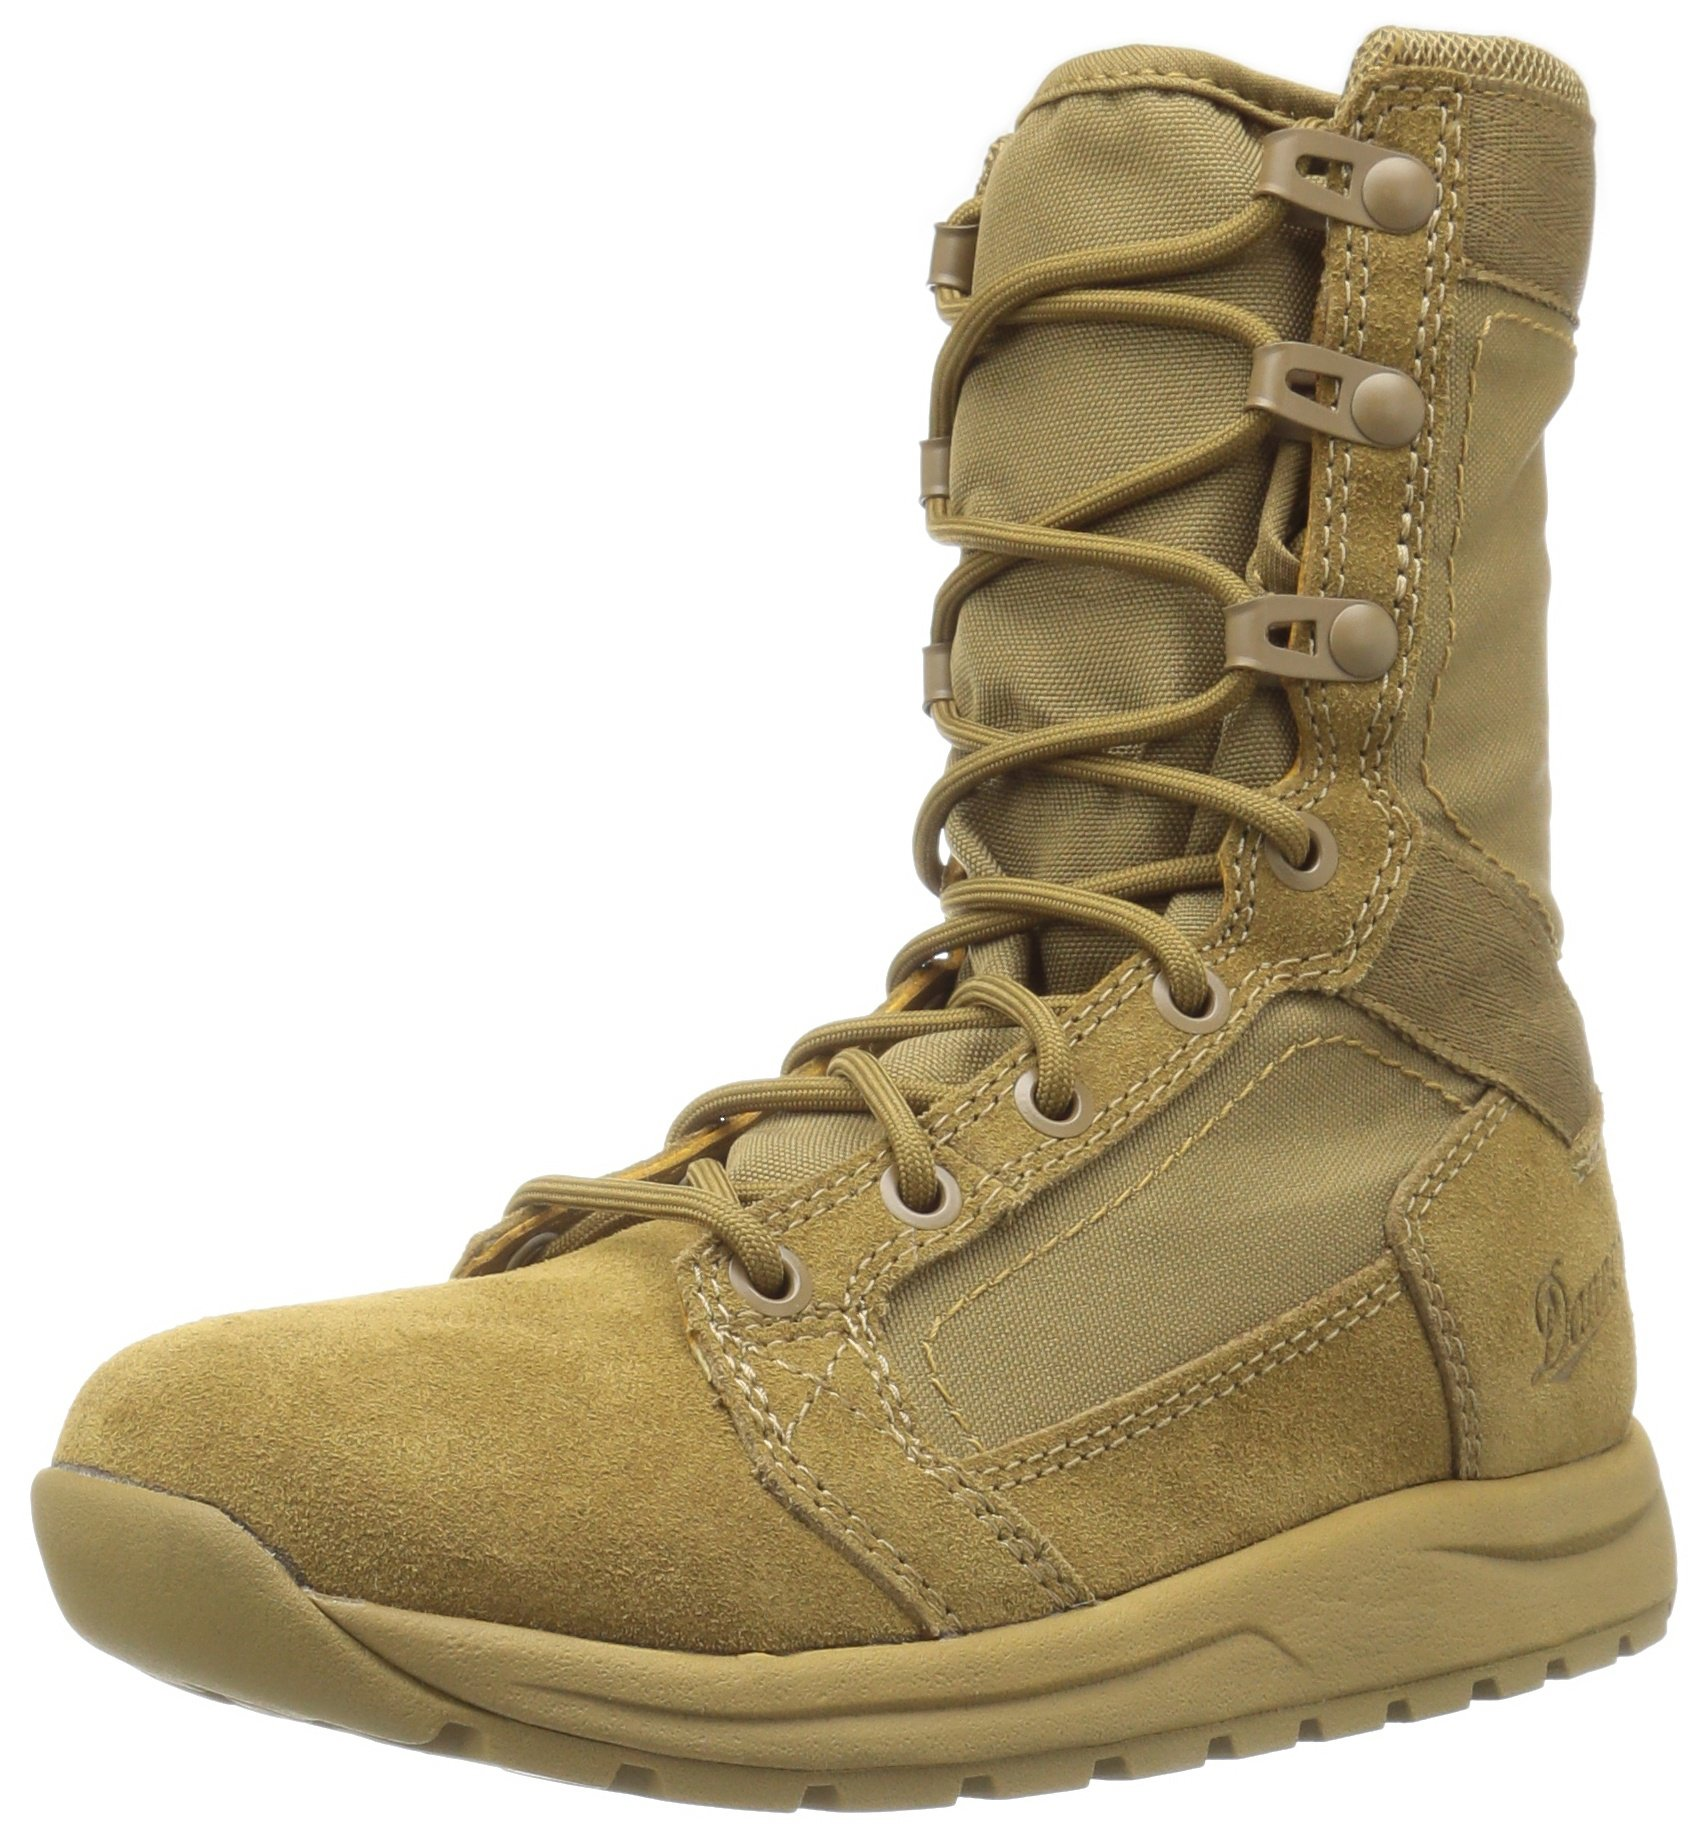 Danner Men's Tachyon 8 Inch Military and Tactical Boot, Coyote, 12 D US